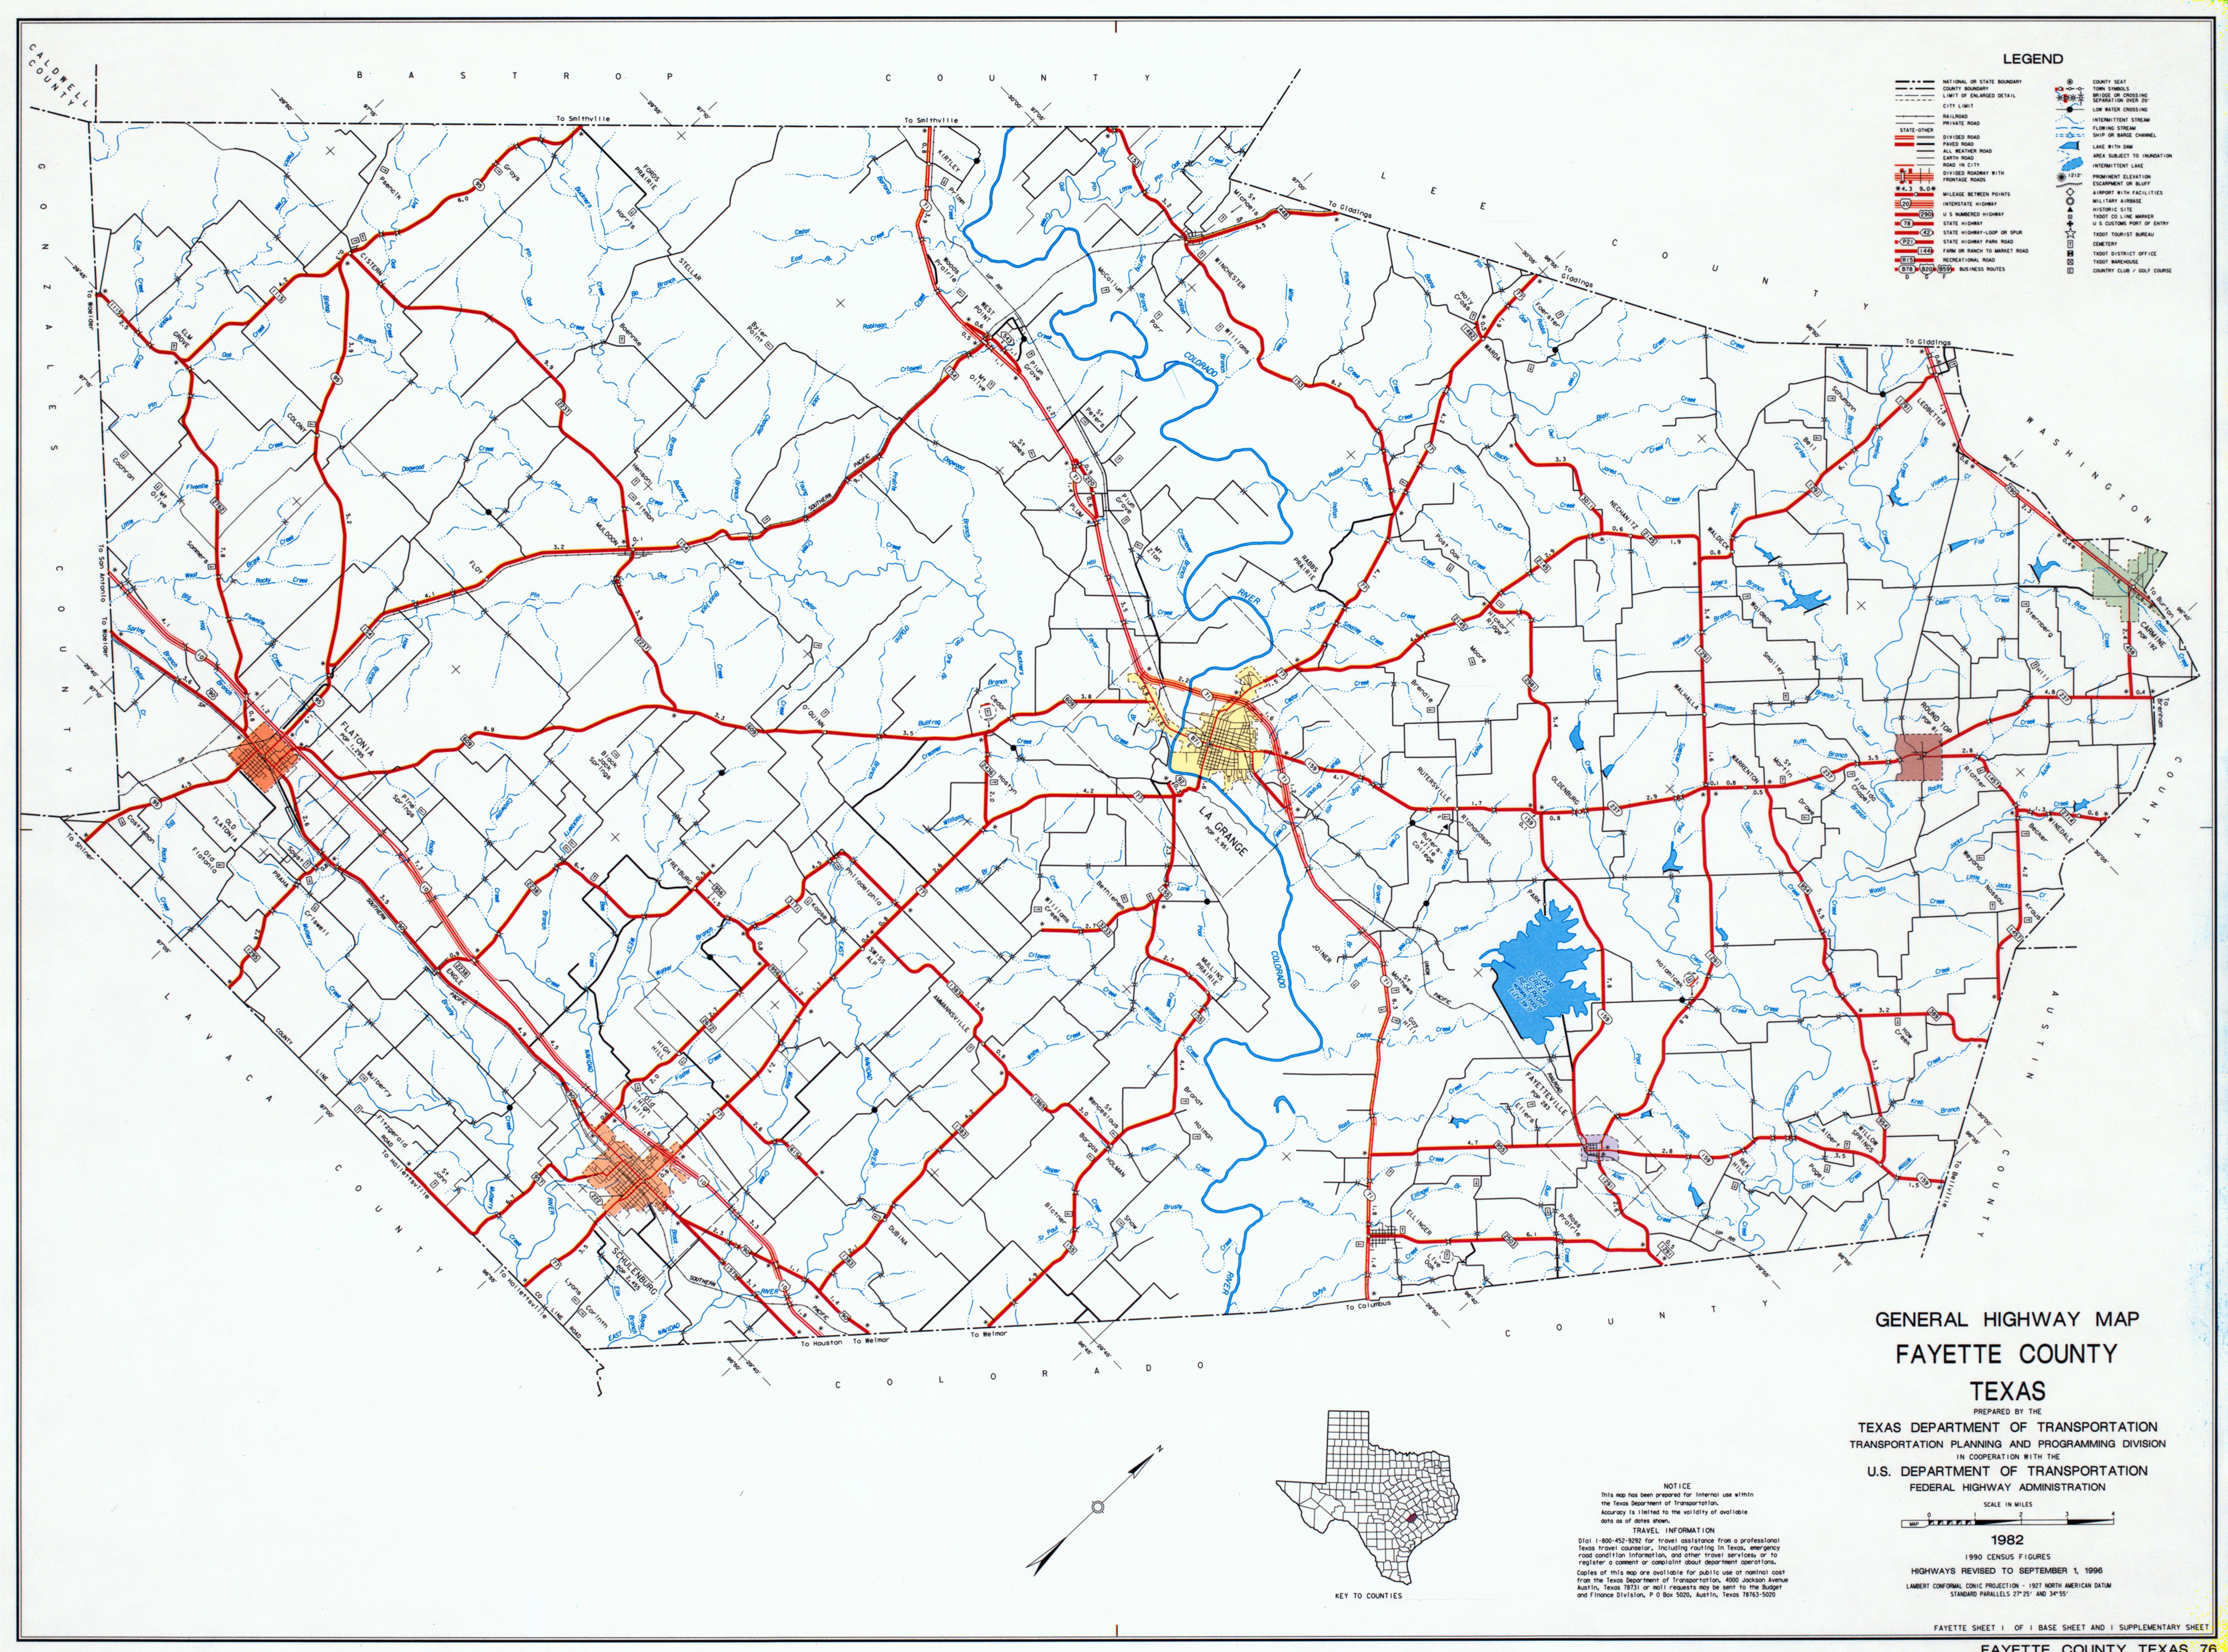 Texas Map Of Texas.Fayette County Texas Maps